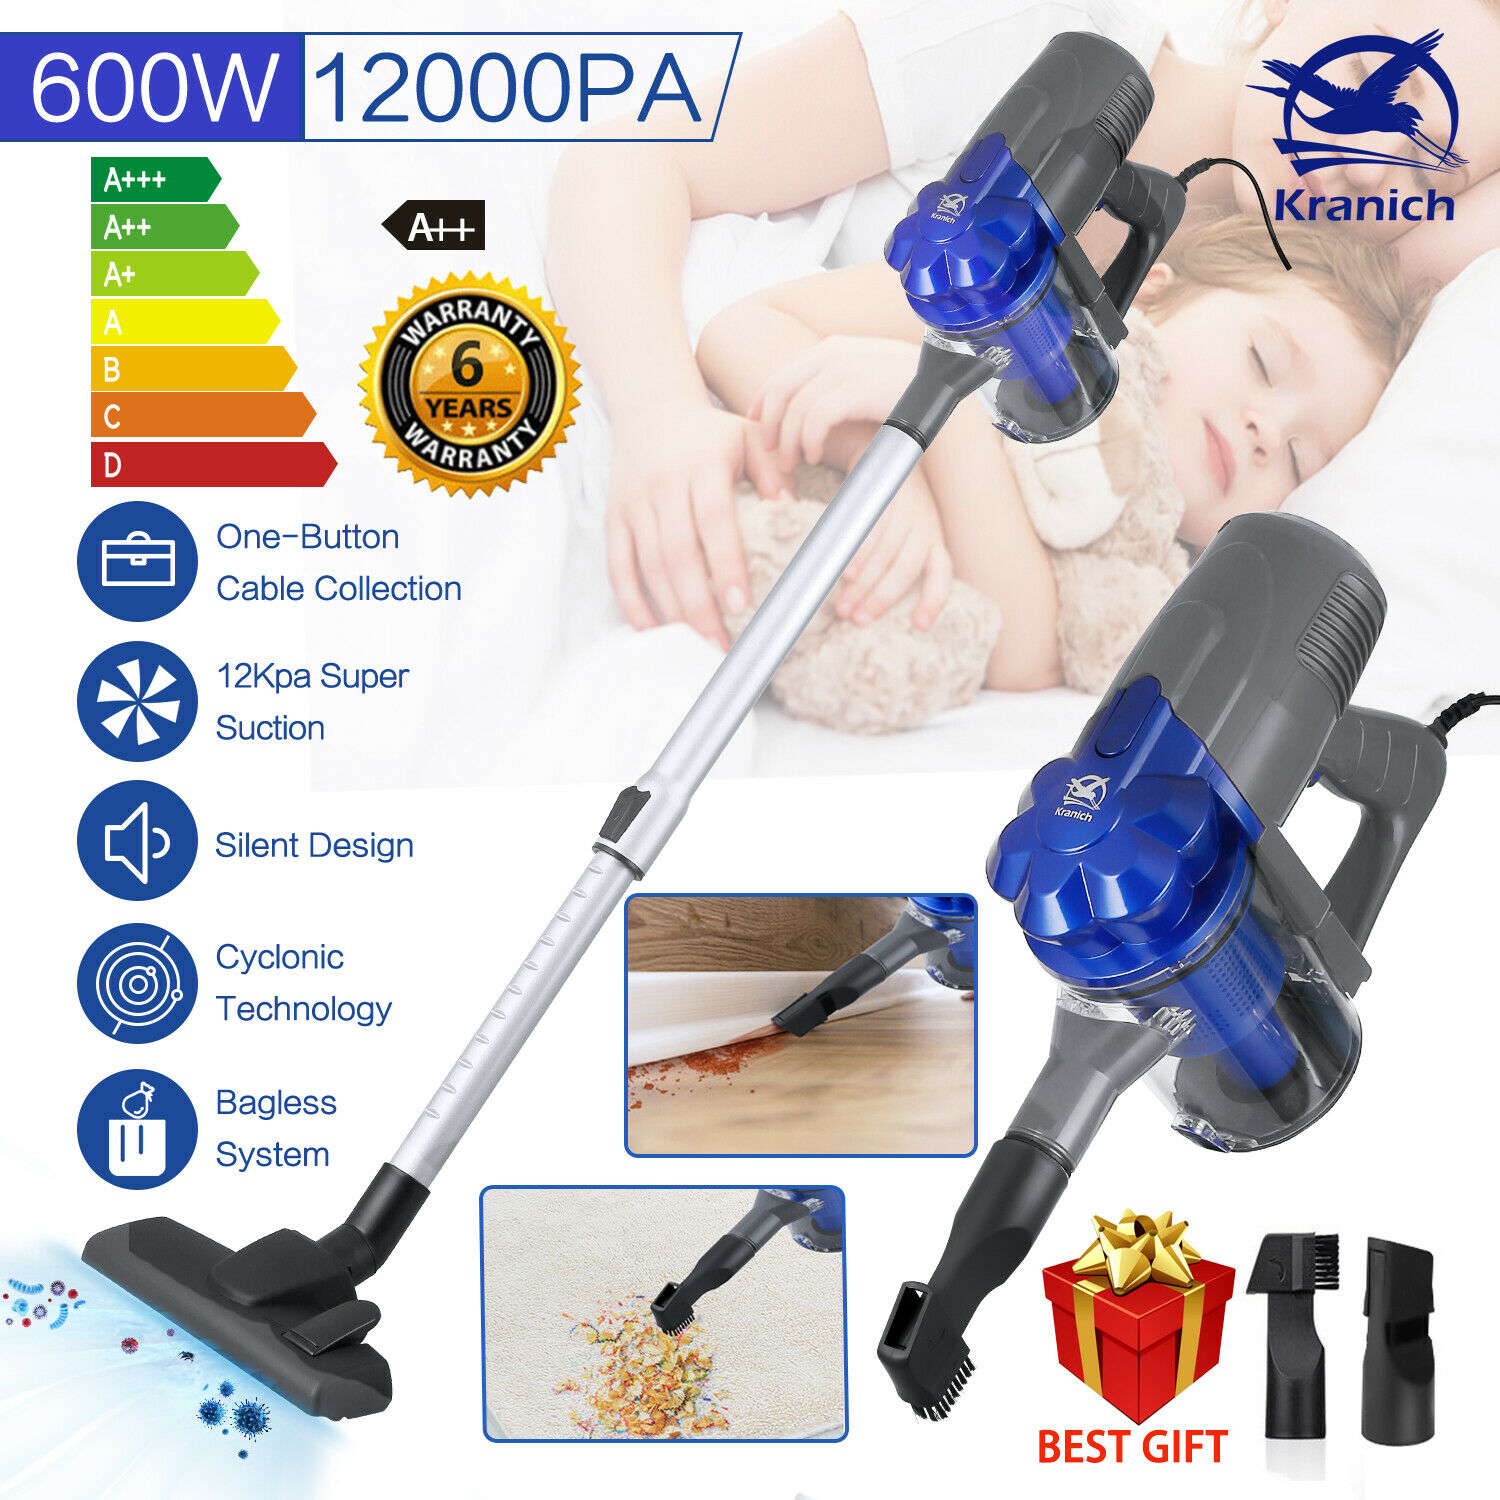 Details about 4 IN 1 Upright & Handheld Vacuum Cleaner 12Kpa Lightweight Bagless Hoover Vac